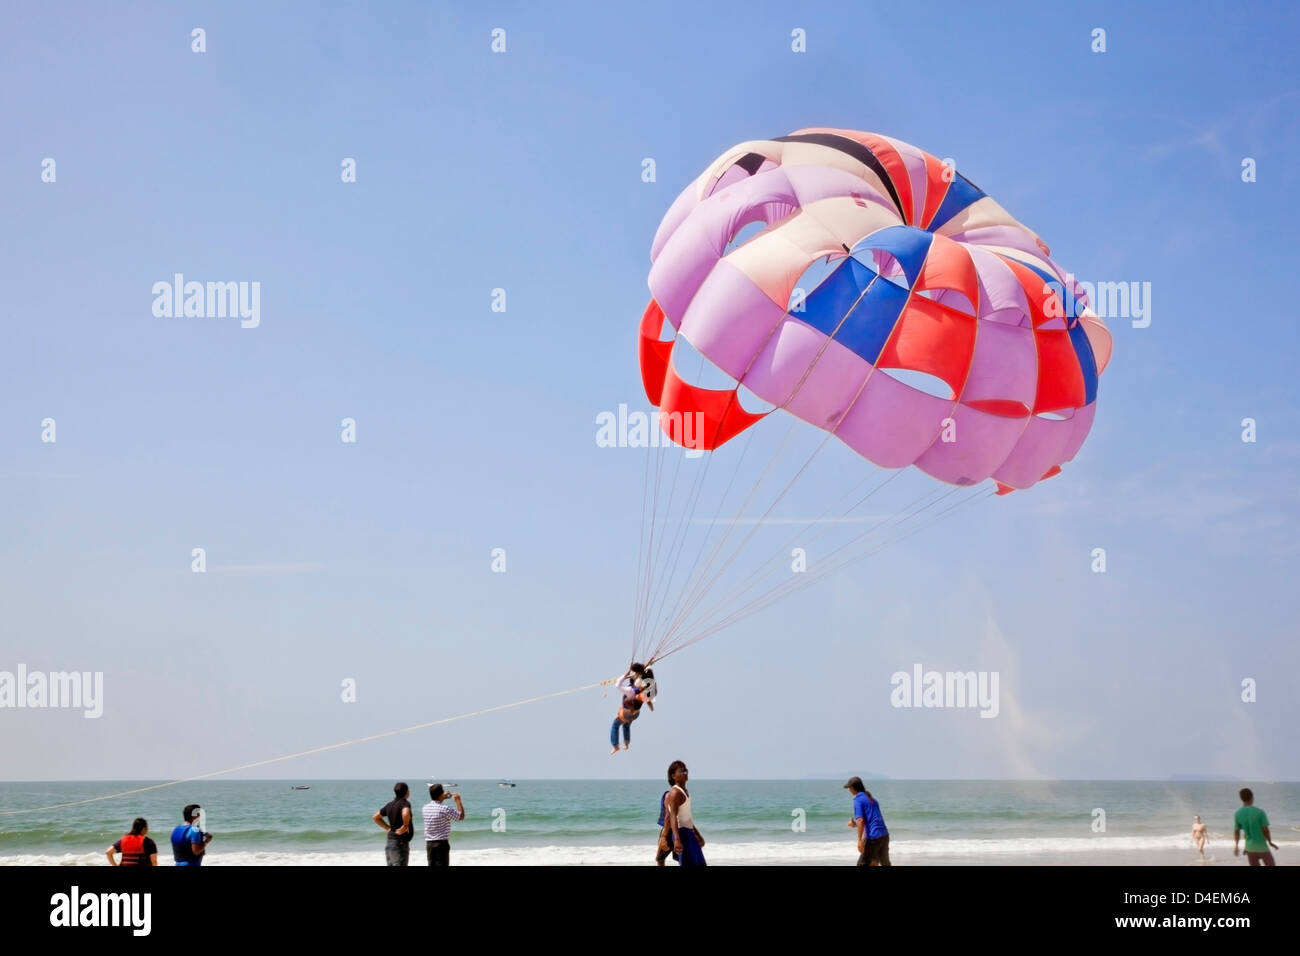 Landscape of para glider taking off leaving a trail of sand blowing in the breeze Stock Photo